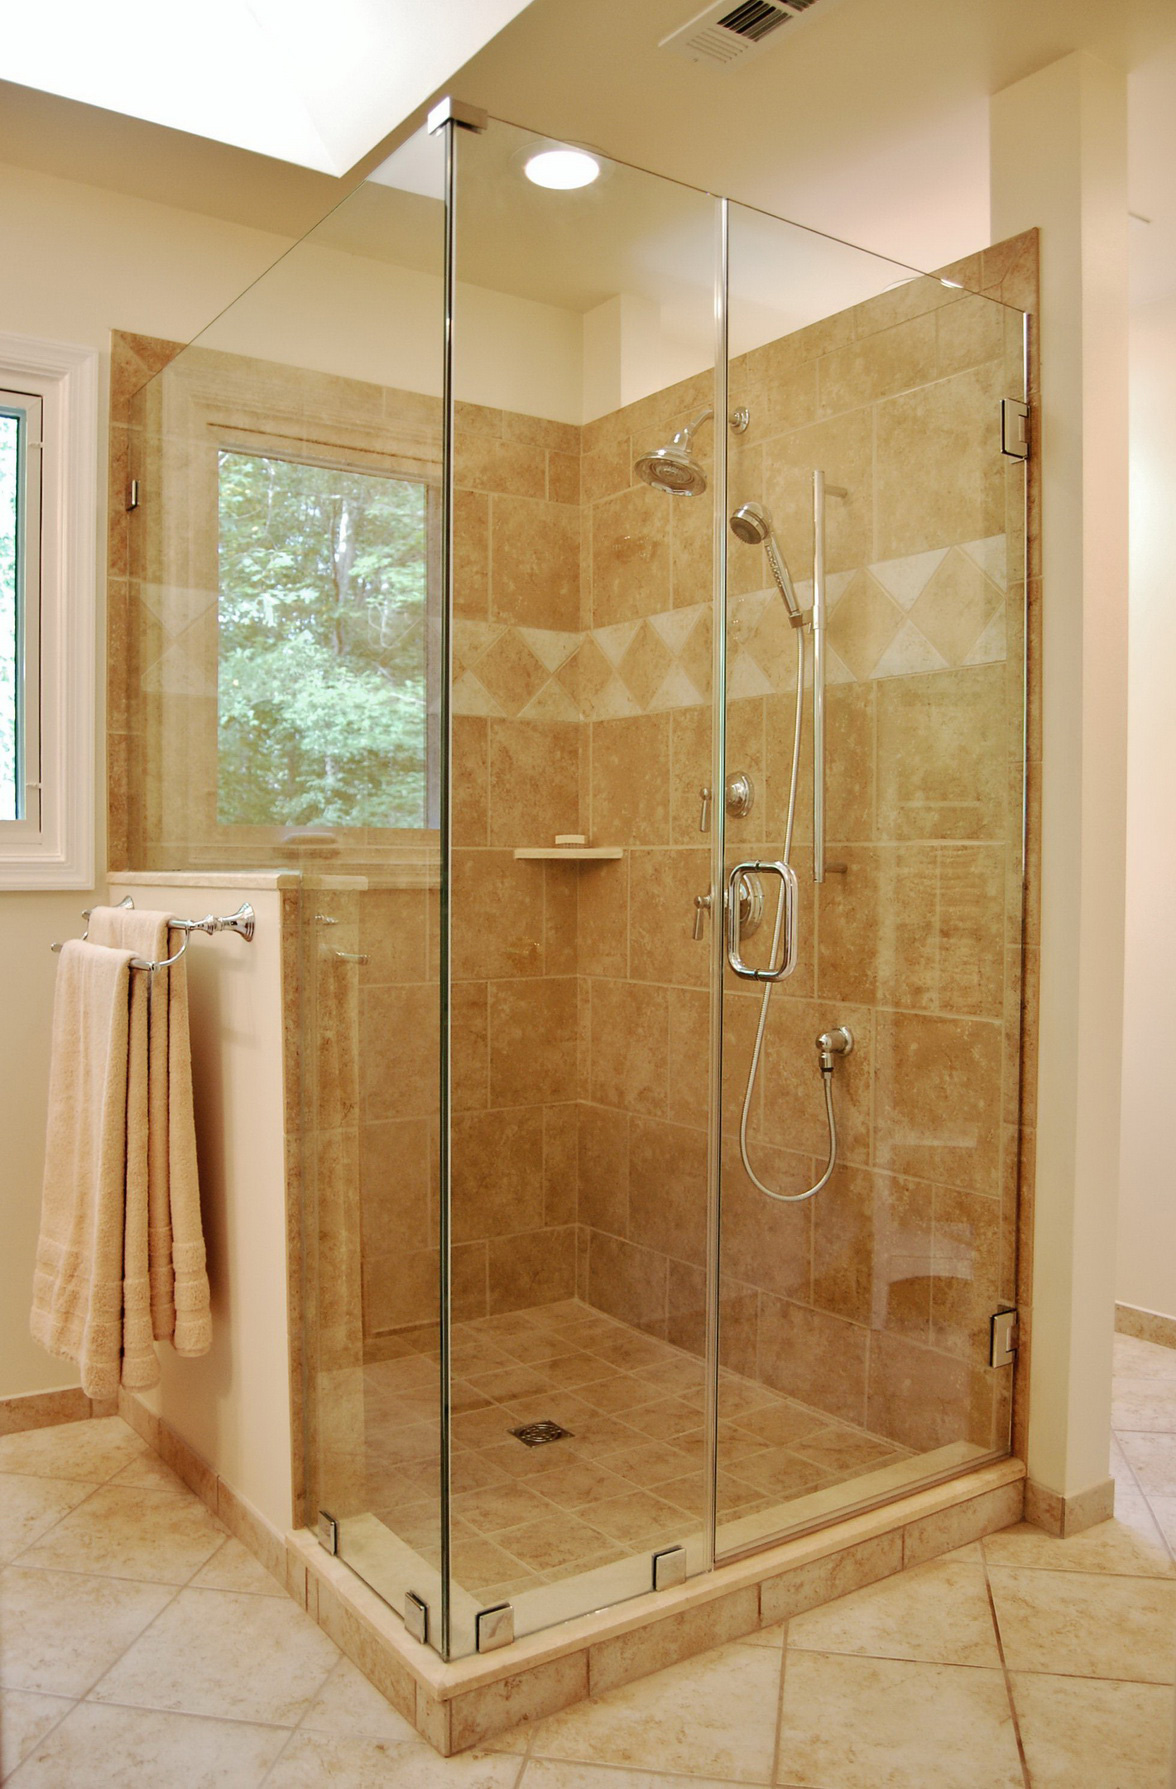 Benefits of Glass Enclosed Showers HomesFeed : simple glass enclosed showers walnut tile walls and floor walnut hanging towels from homesfeed.com size 1176 x 1789 jpeg 558kB